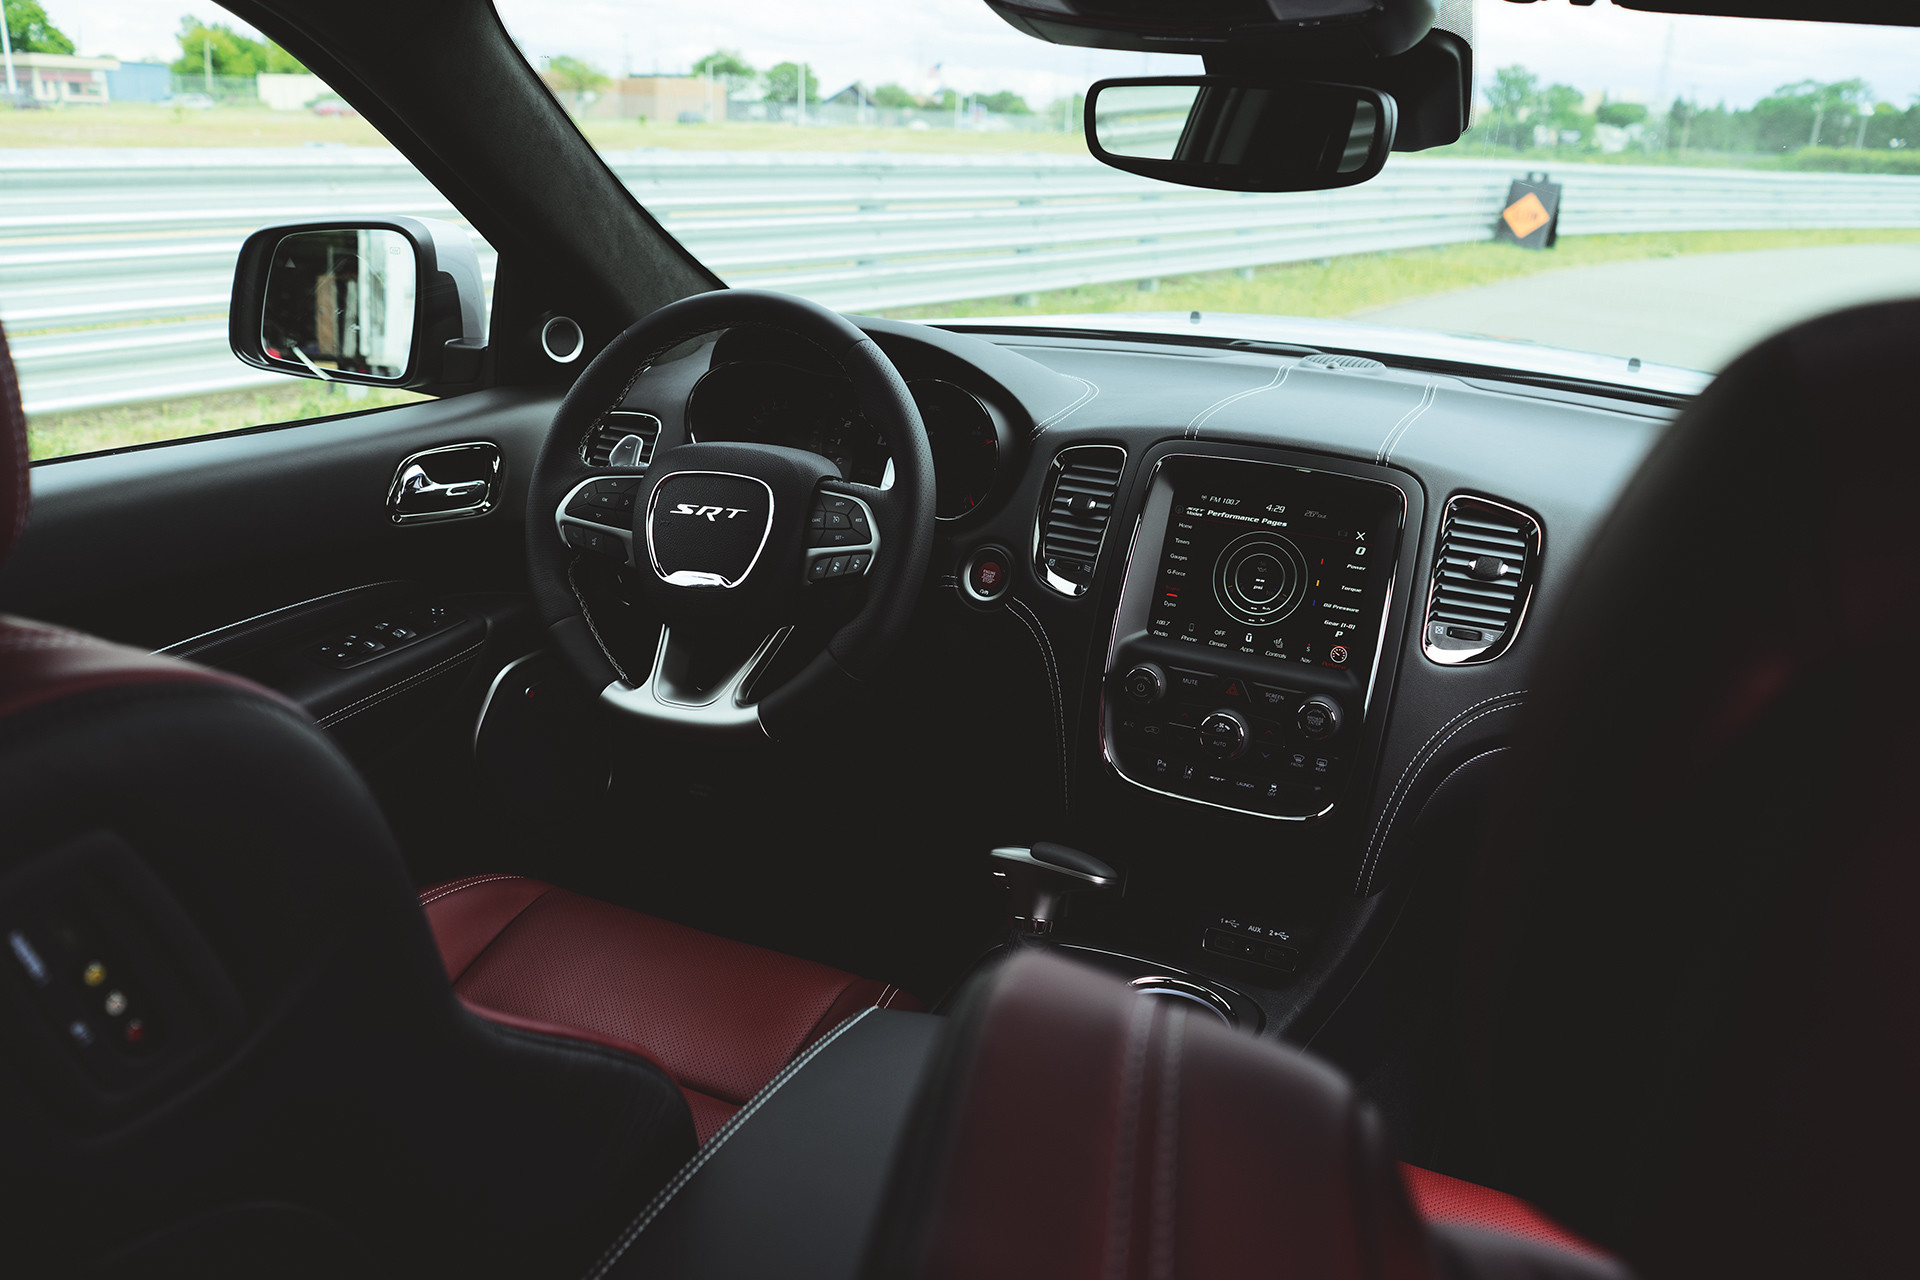 2019 Dodge Durango interior view of SRT cockpit, showing steering wheel and full-colour in-cluster display